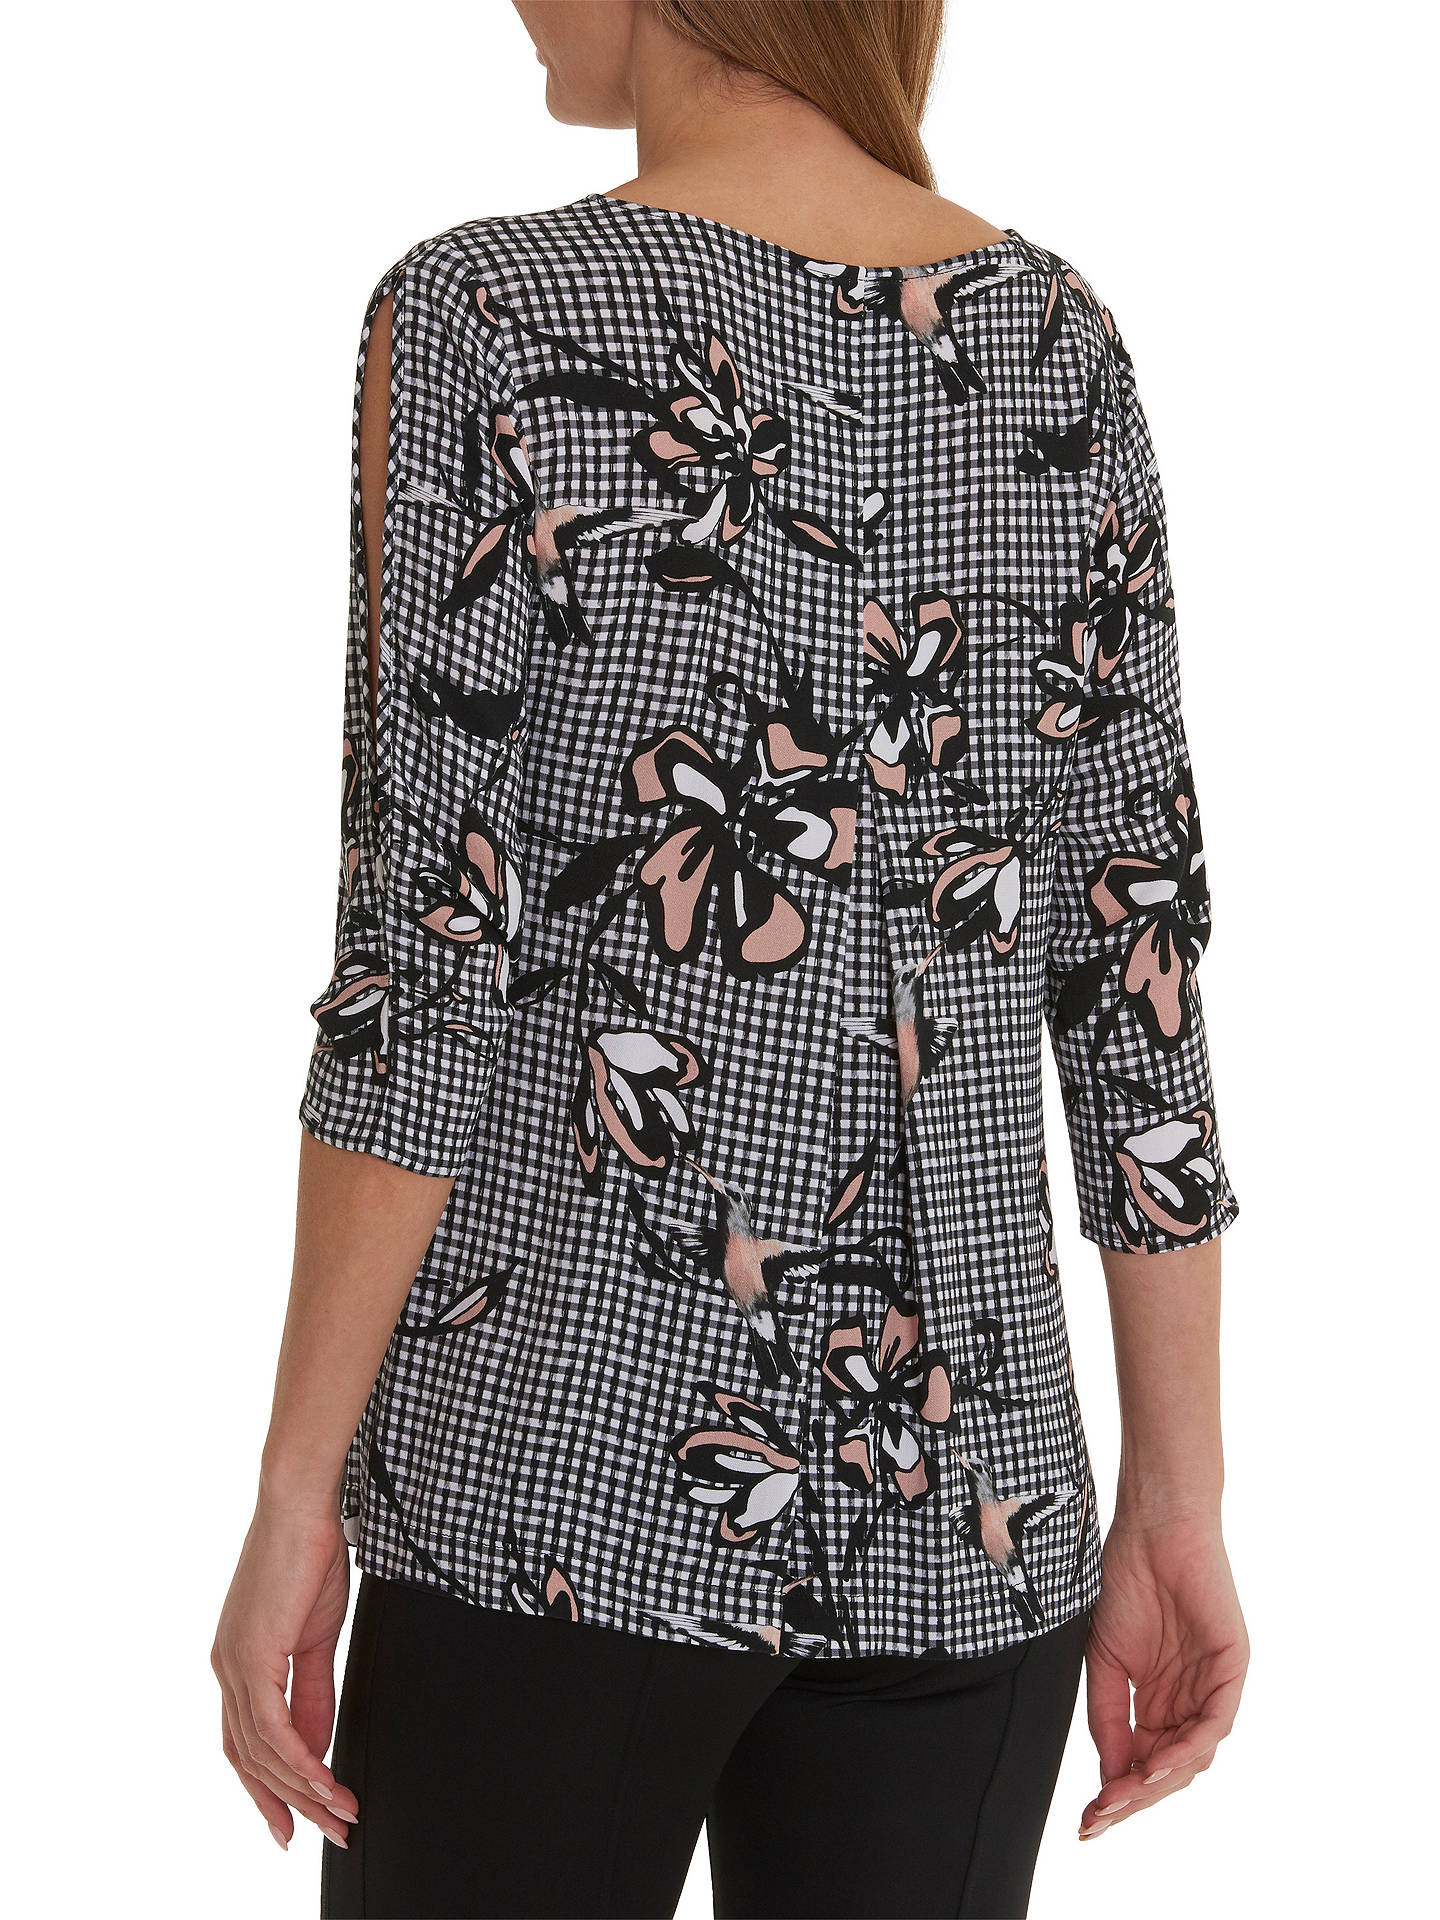 BuyBetty & Co. Gingham Print Tunic Top, Black/Rose, 10 Online at johnlewis.com